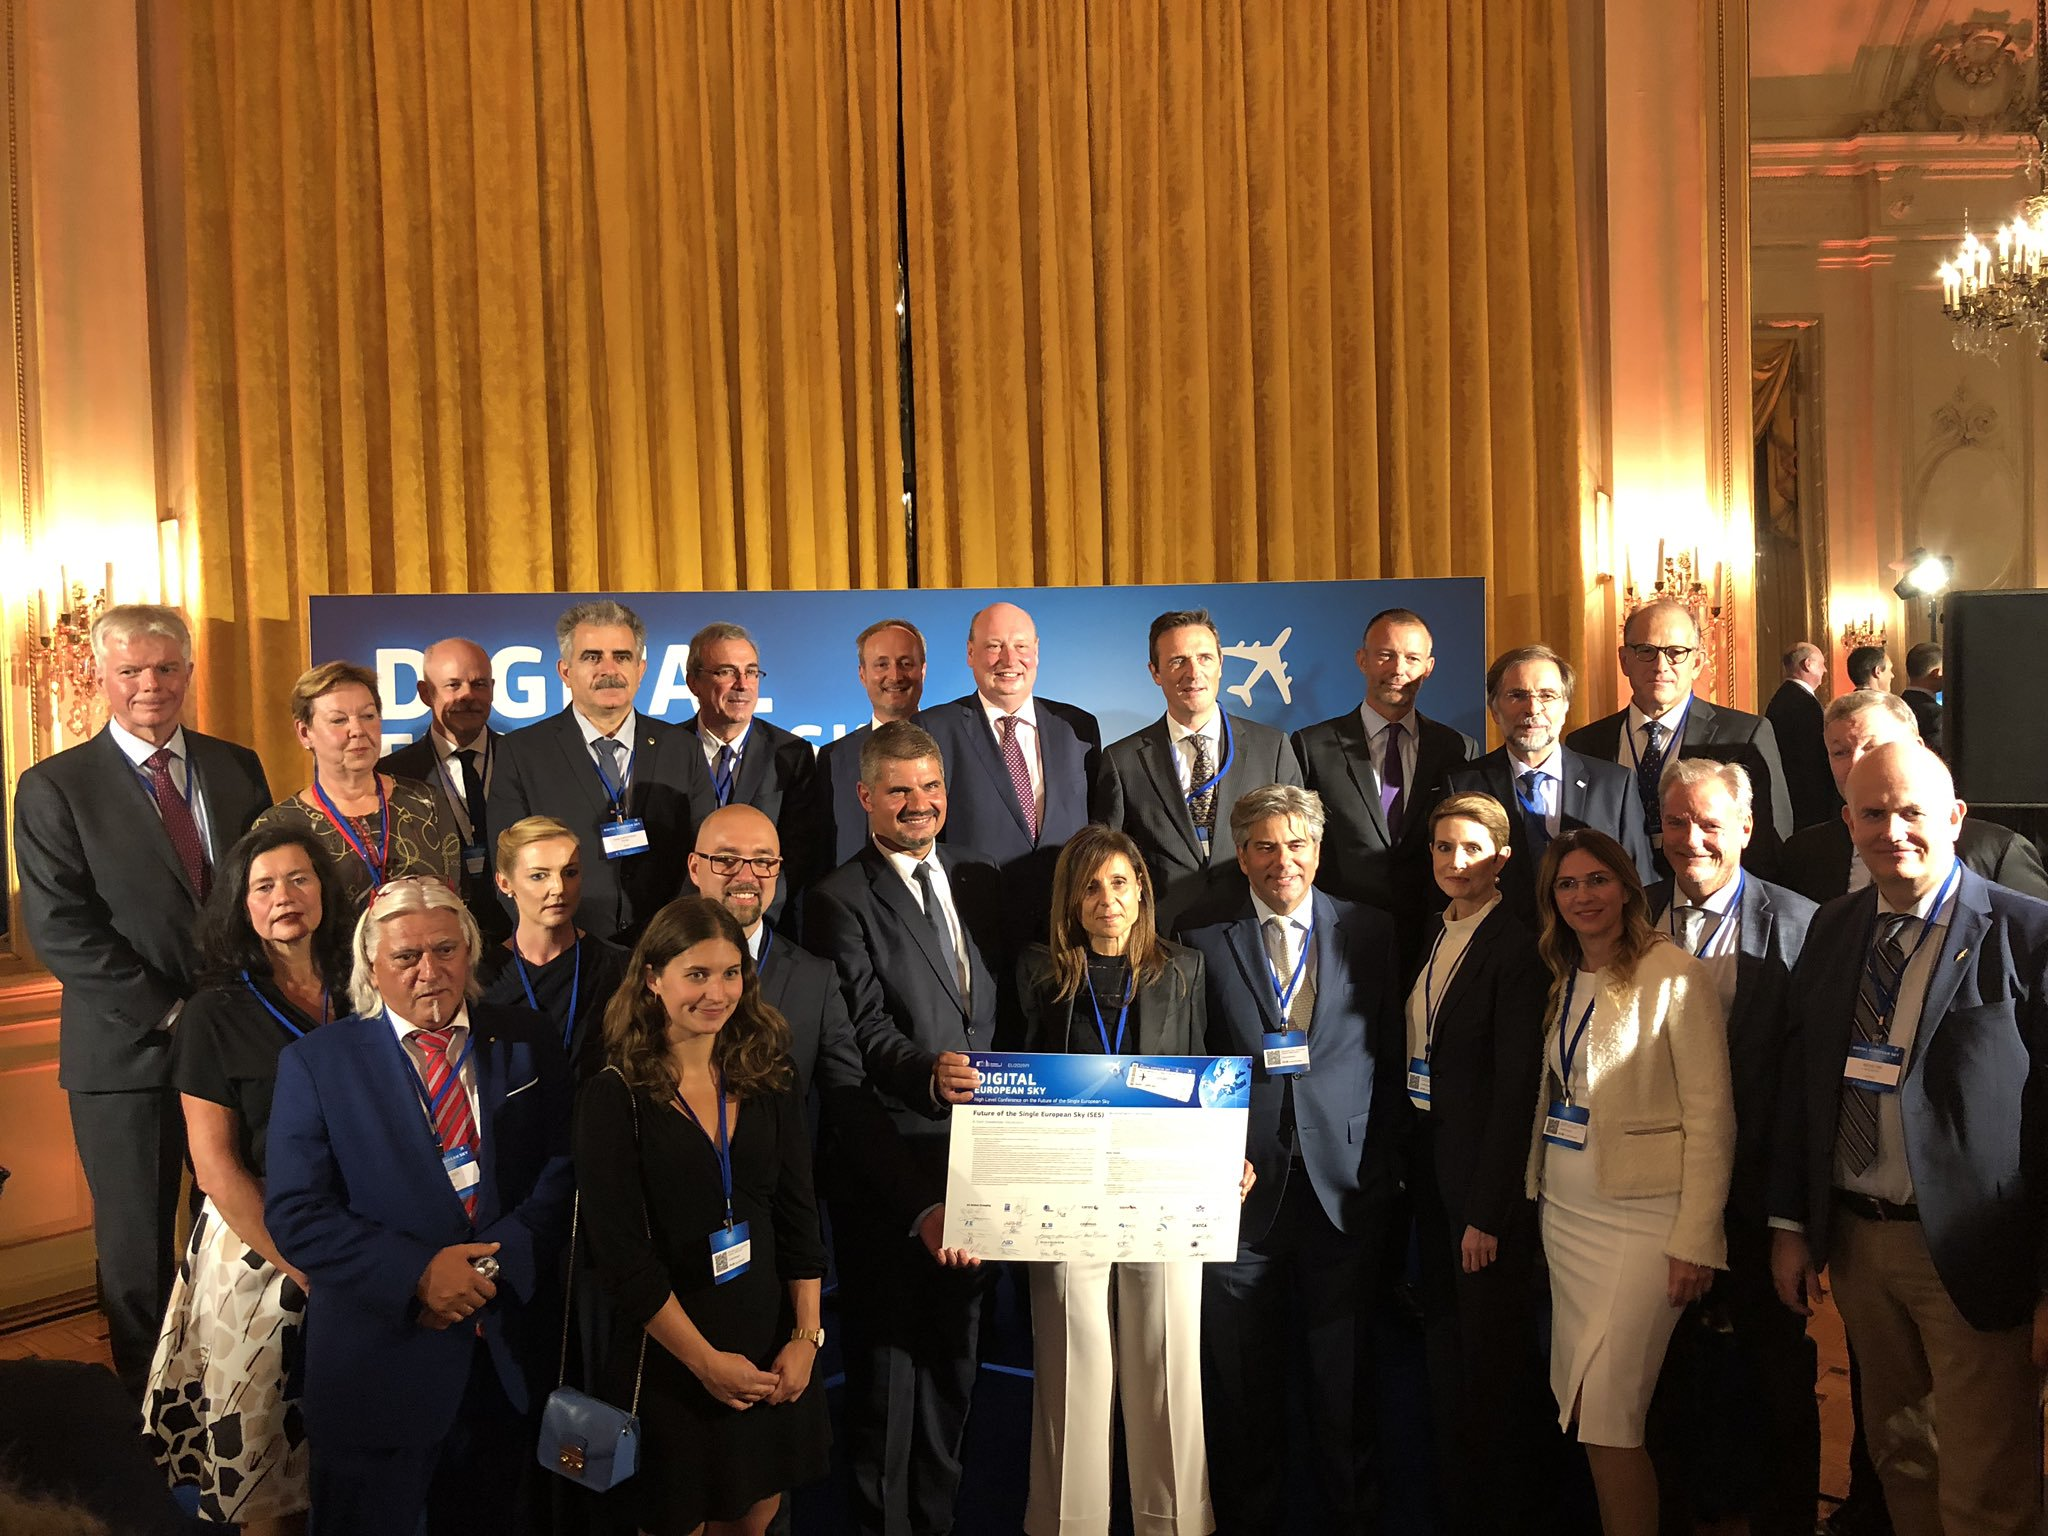 Joint declaration on the future of the Single European Sky